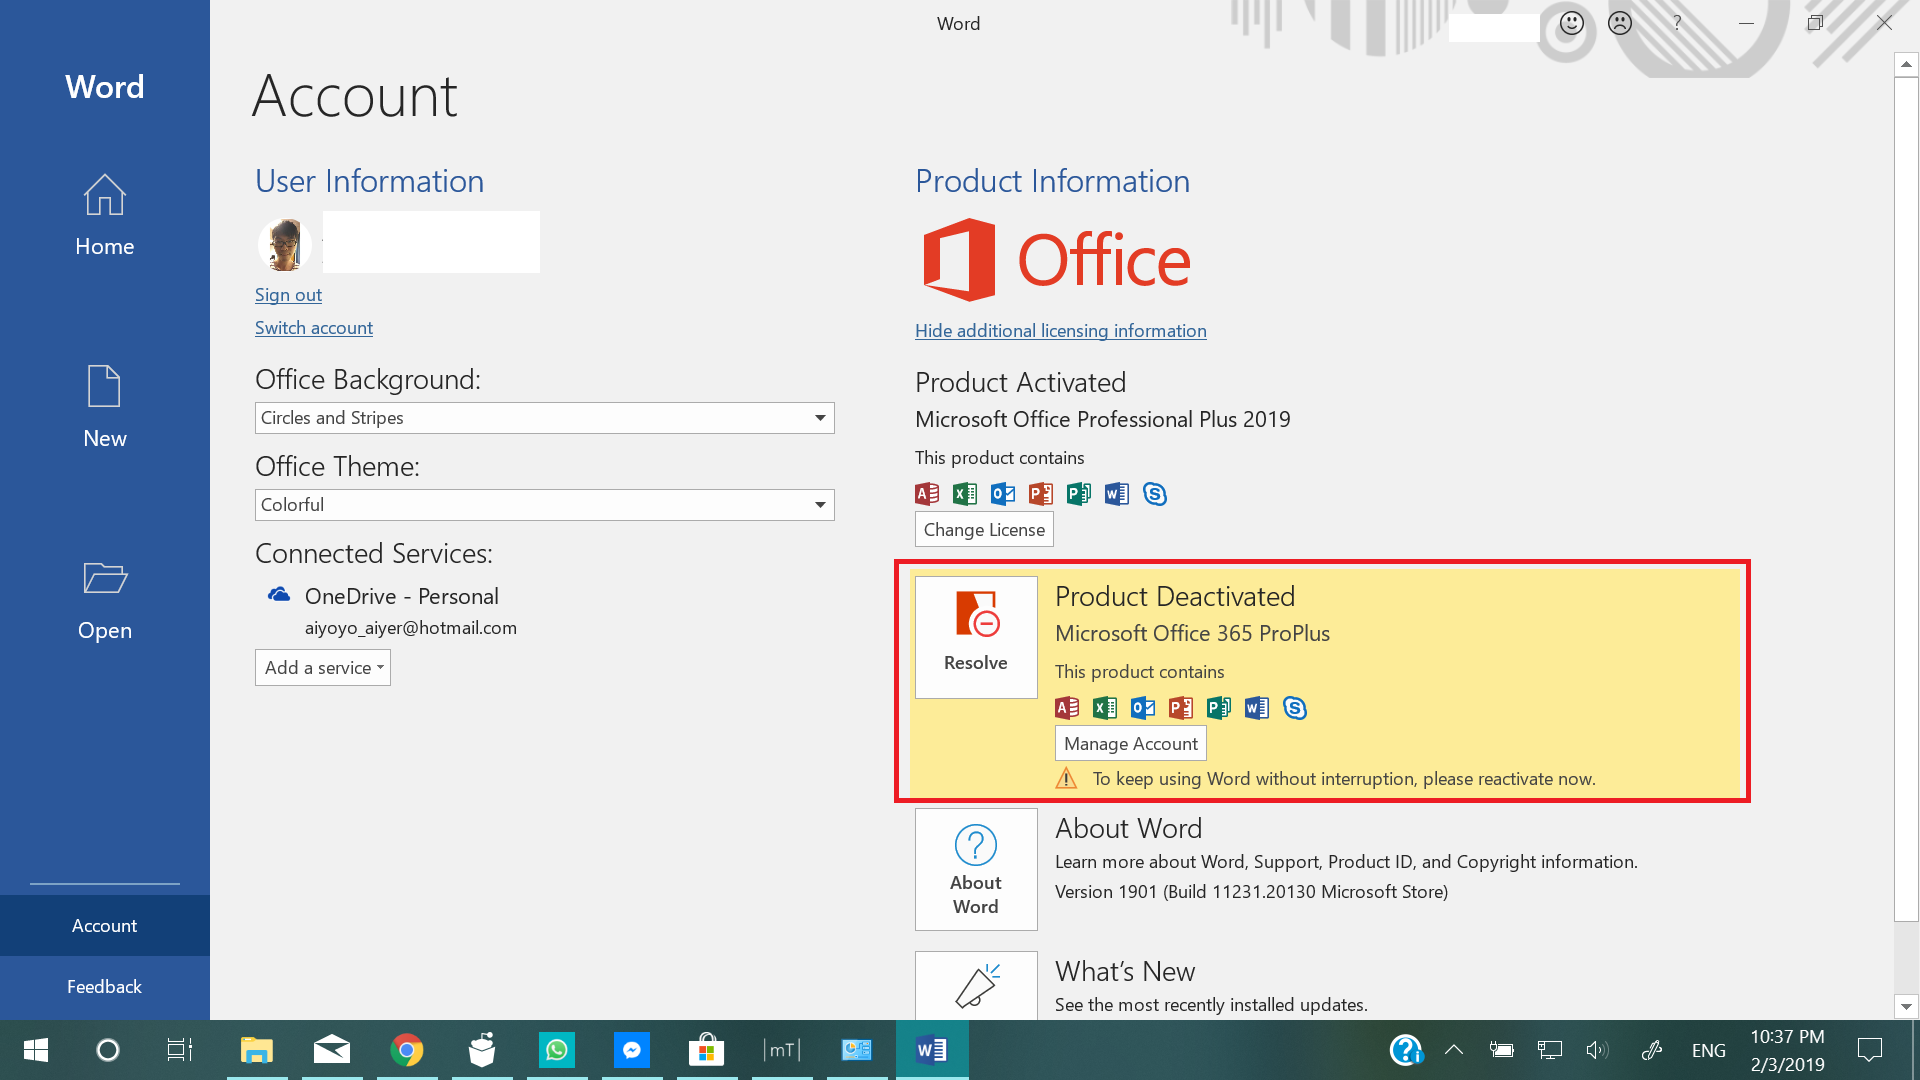 Activation conflict between MS Office 365 and MS Office